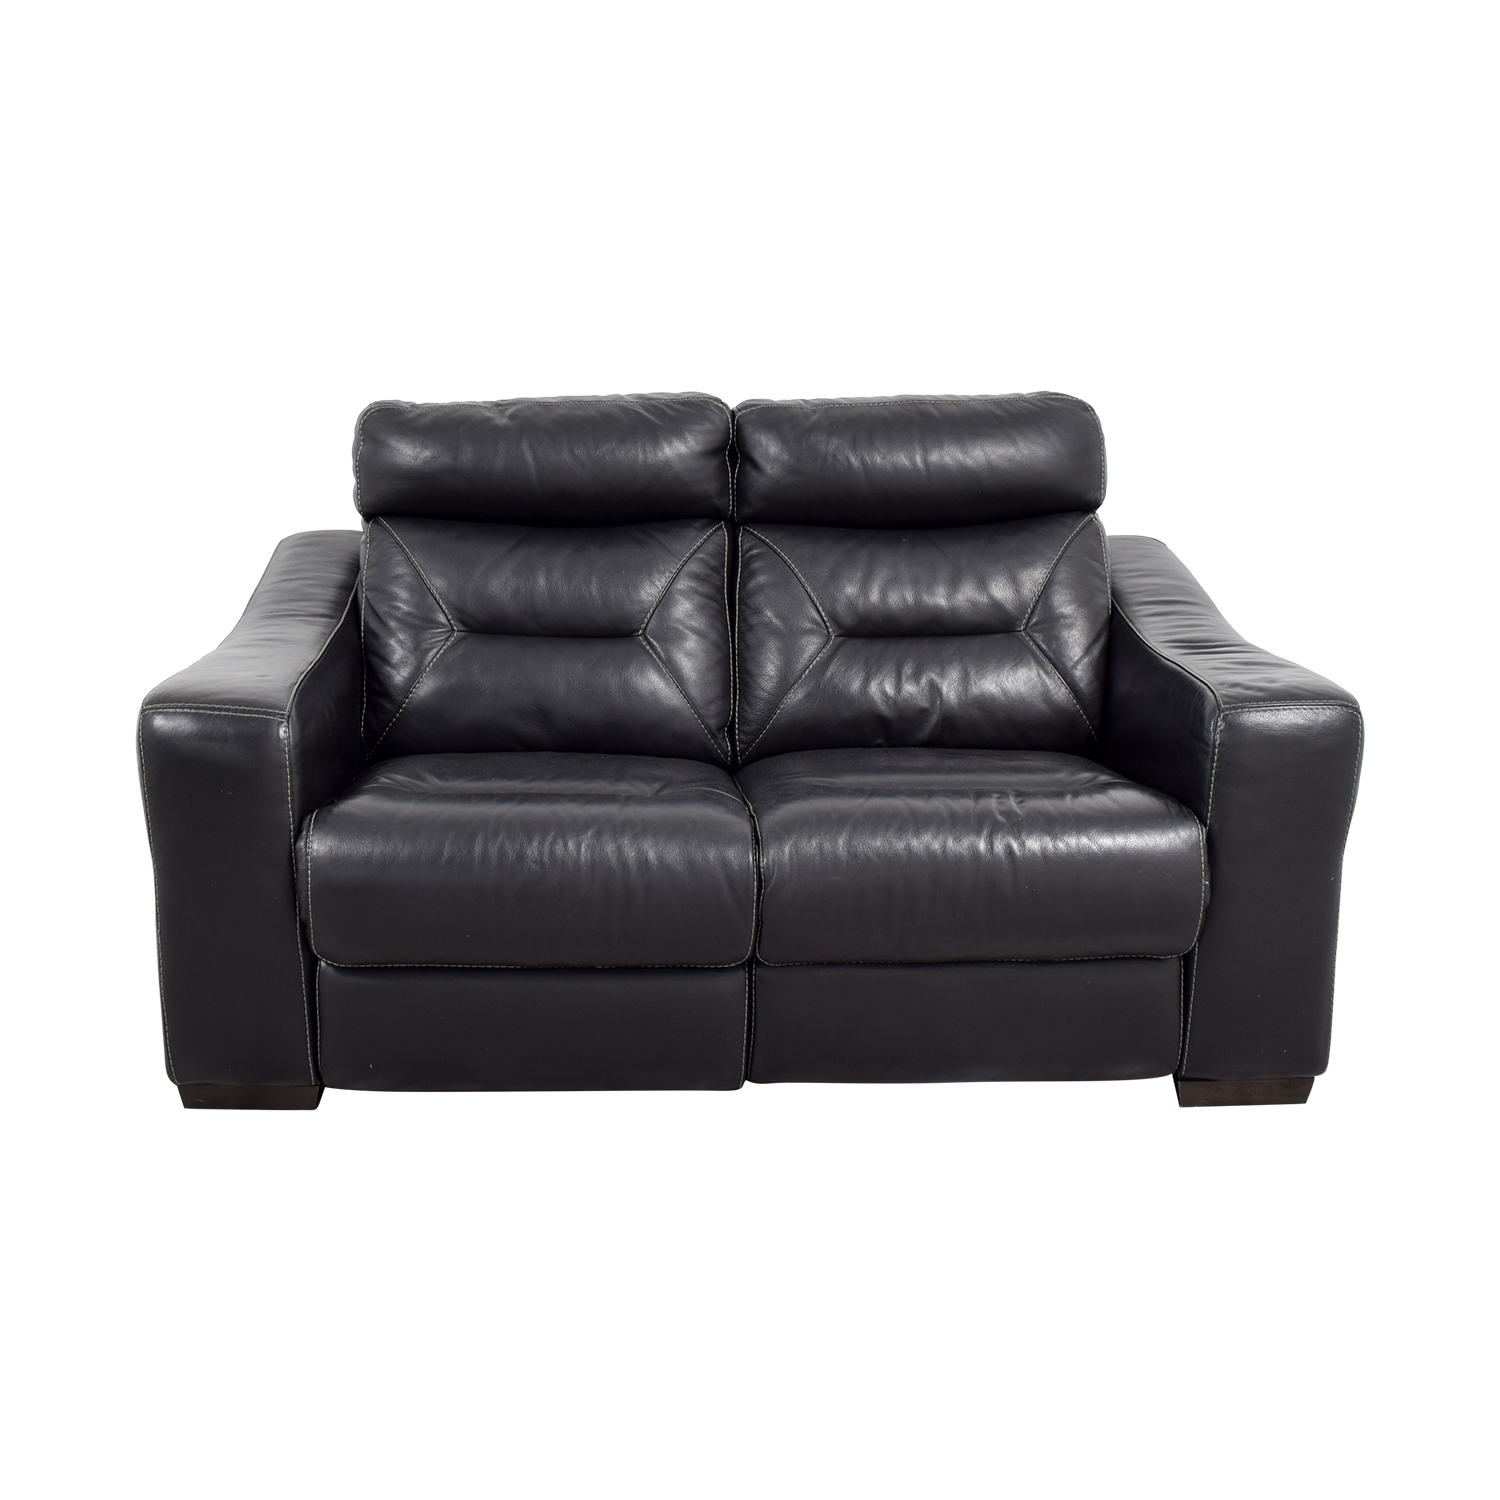 Macy's Macy's Black Leather Recliner Love Seat nj